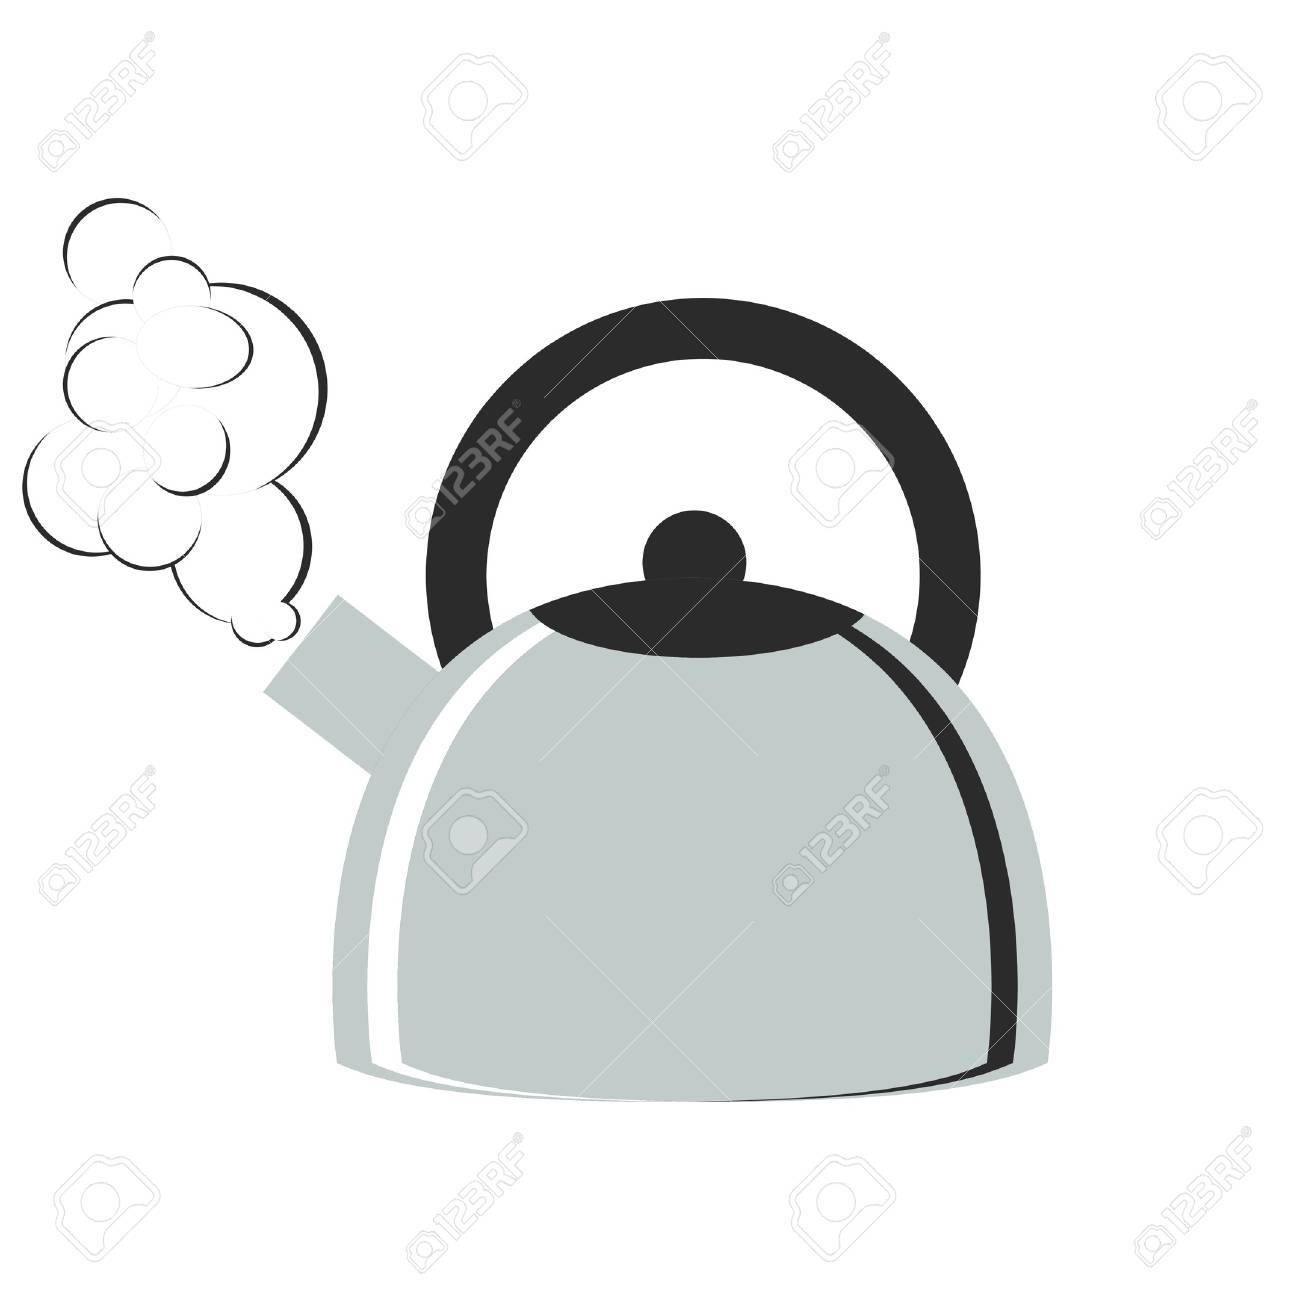 Metal boiling kettle with smoke.